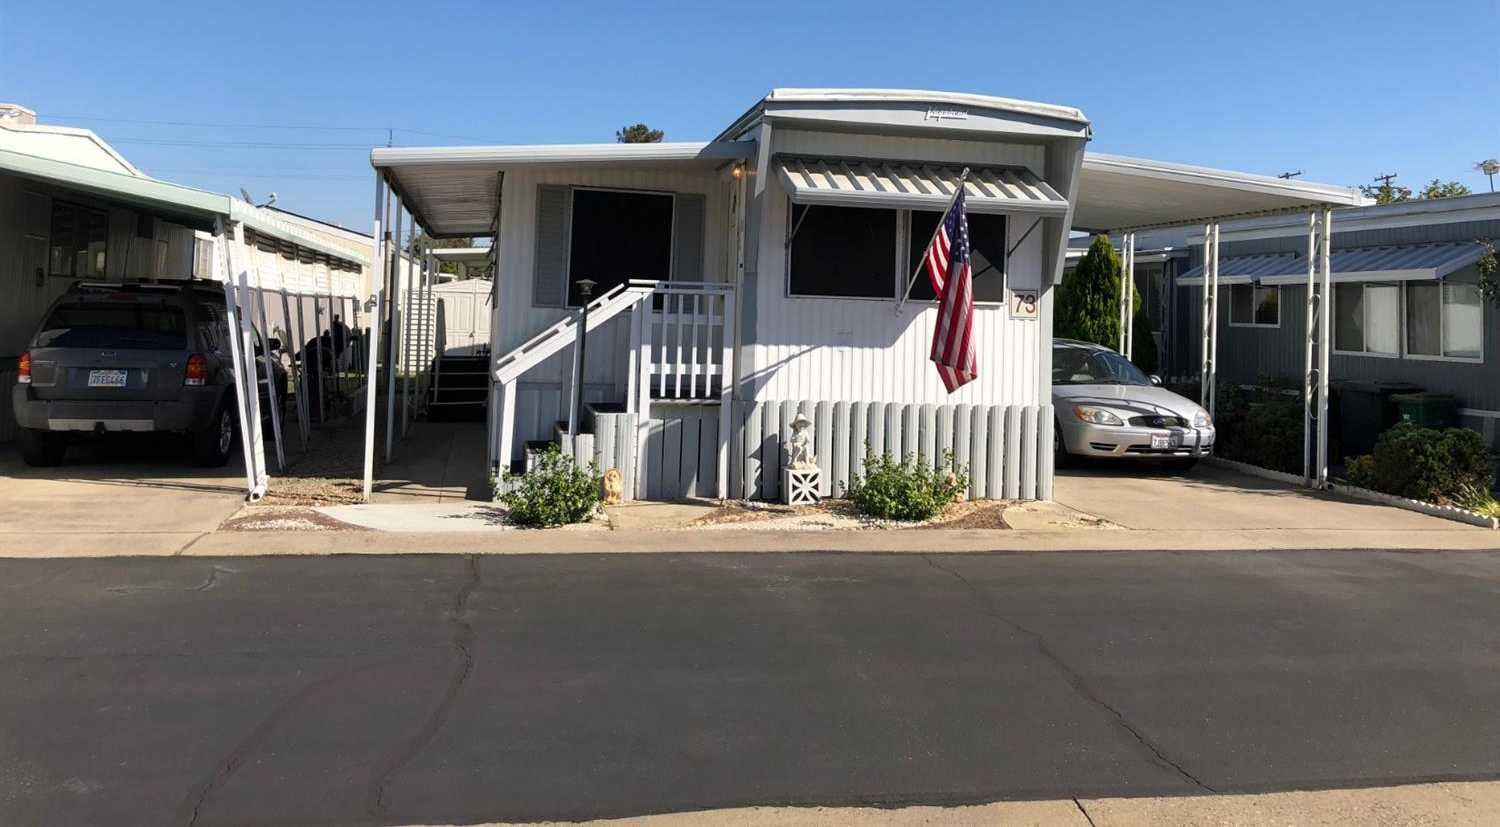 $25,000 - 2Br/1Ba -  for Sale in Lodi